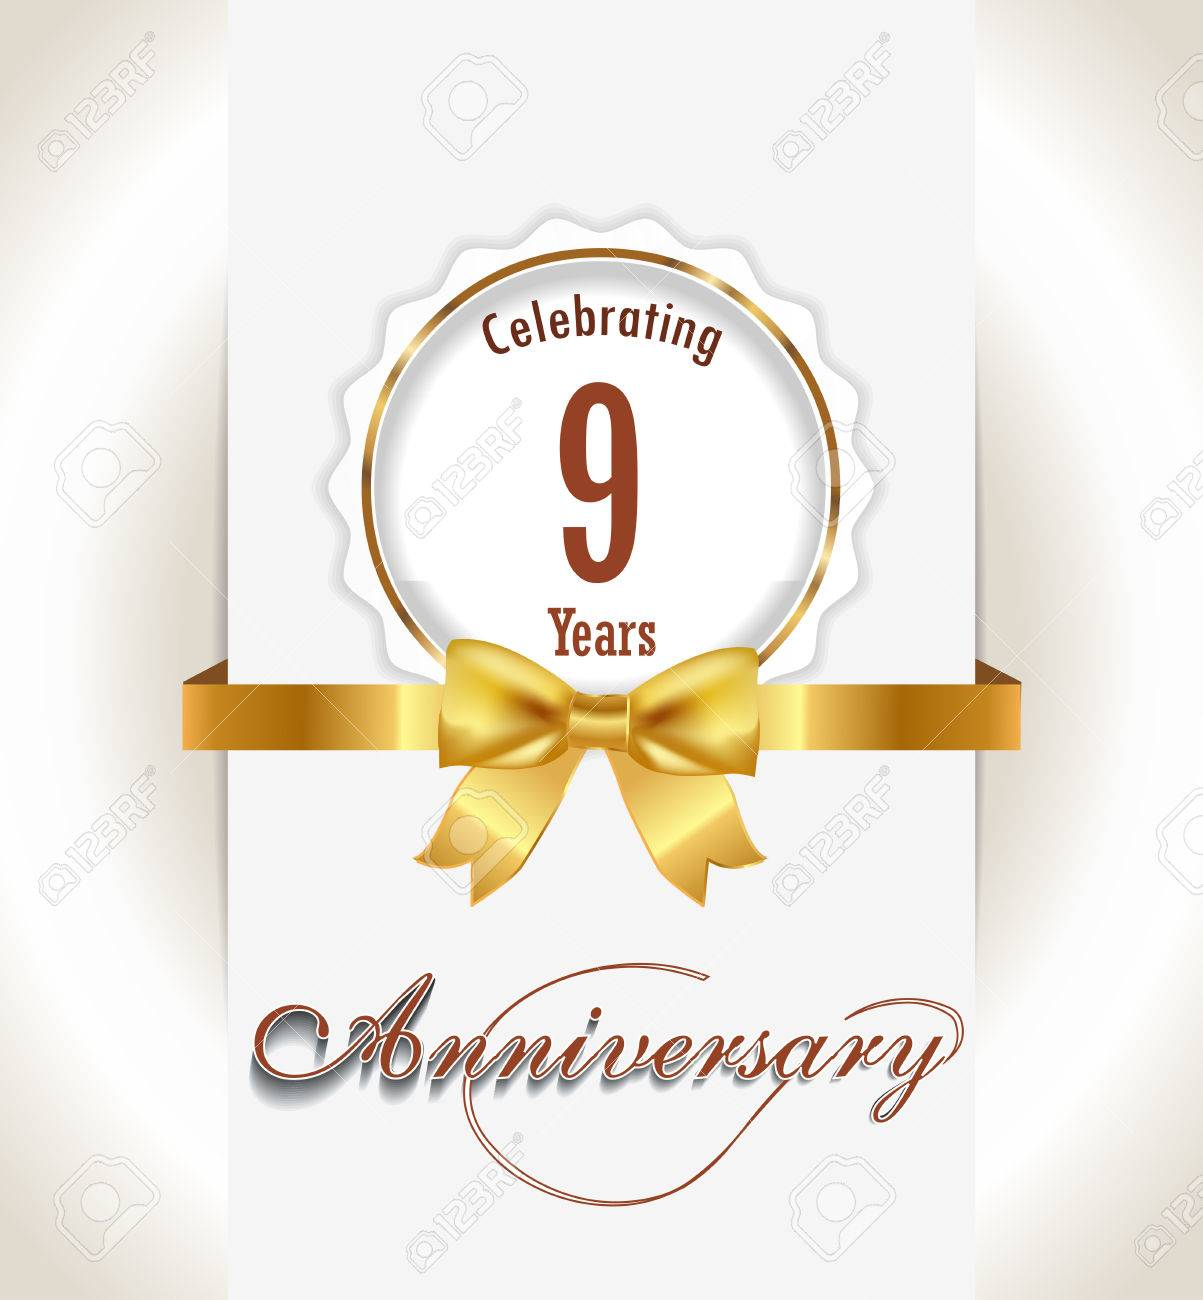 9th anniversary background 9 years celebration invitation card 9th anniversary background 9 years celebration invitation card vector eps 10 banco de imagens stopboris Image collections